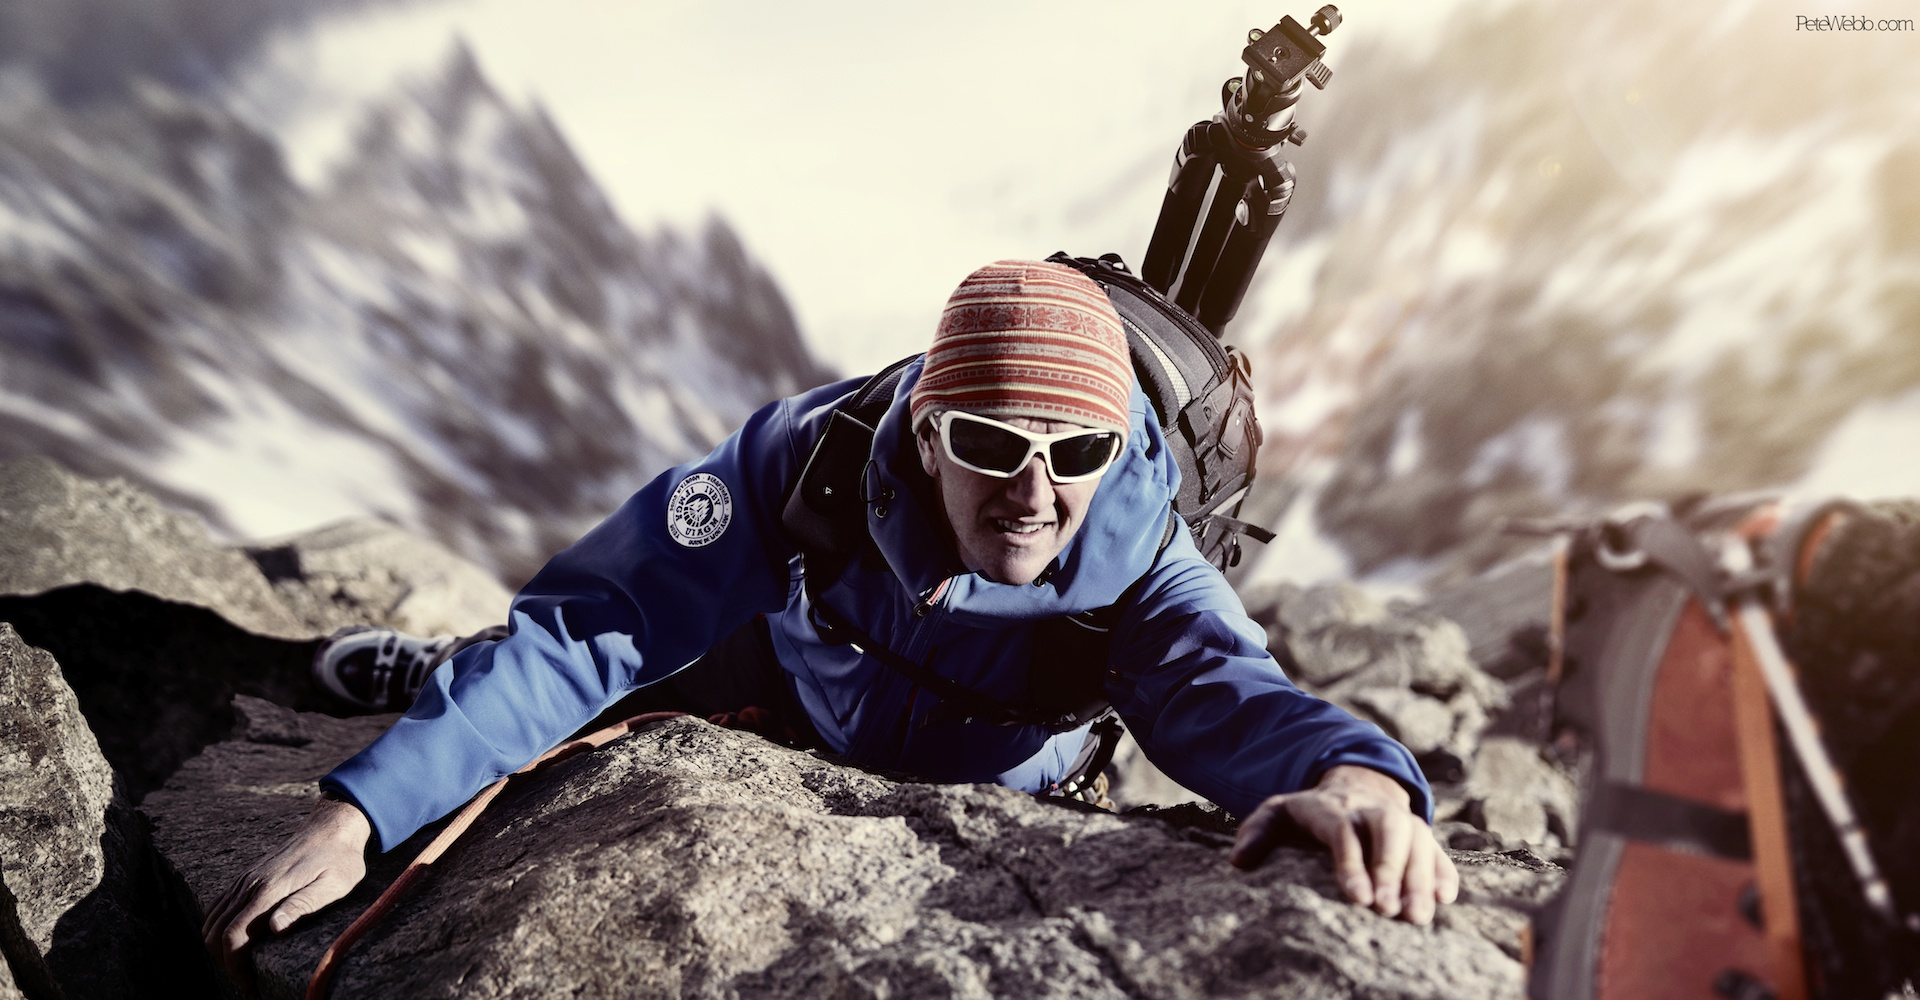 A dramatic shot of mountaineer Jonny Baird created with 4 images retouched by Happy Finish, shot on the Phase One 645DF+ with the IQ260.